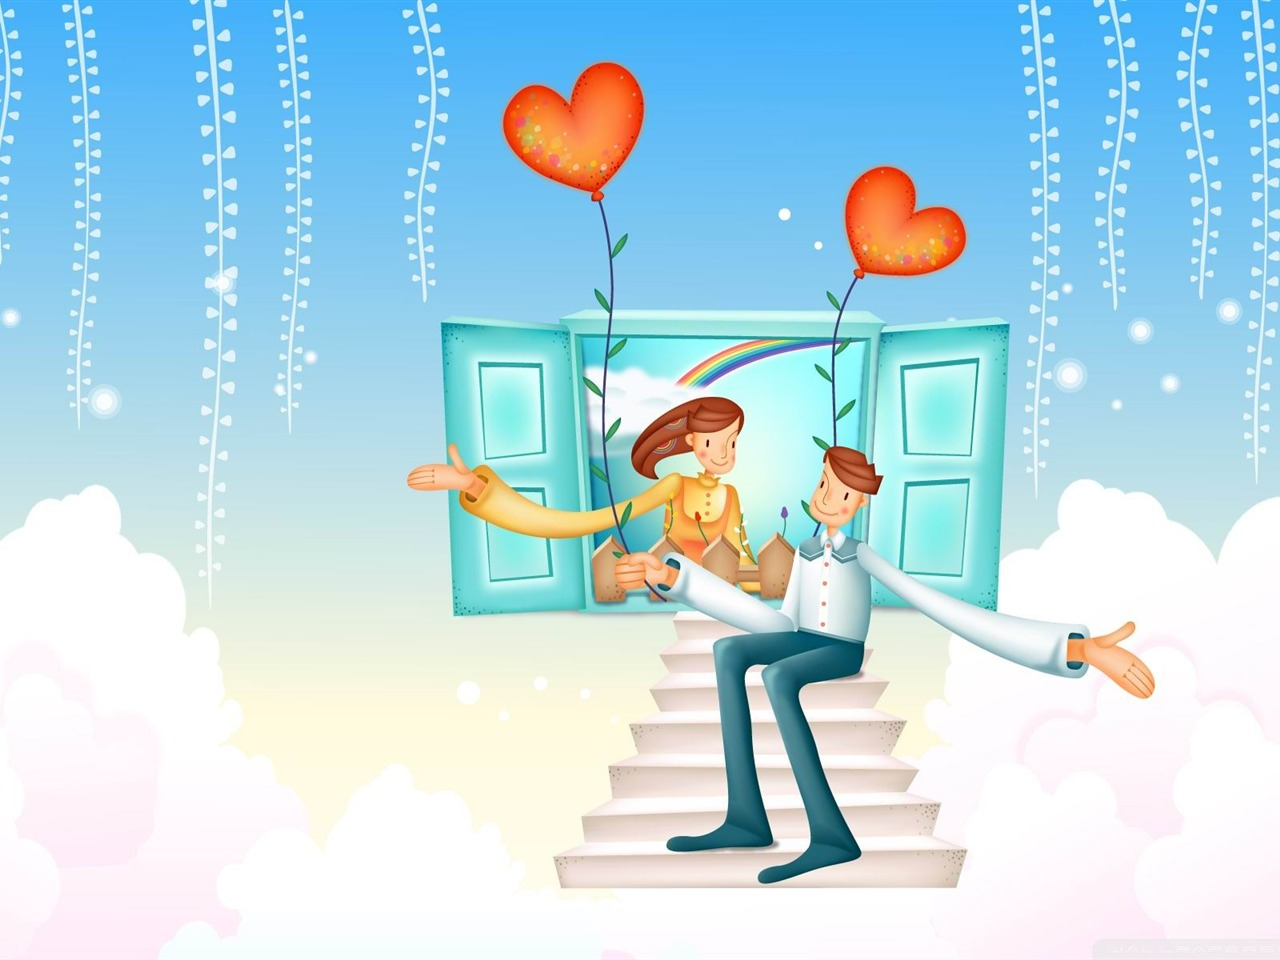 With Love Valentines Day-Romantic Valentines Day Vector